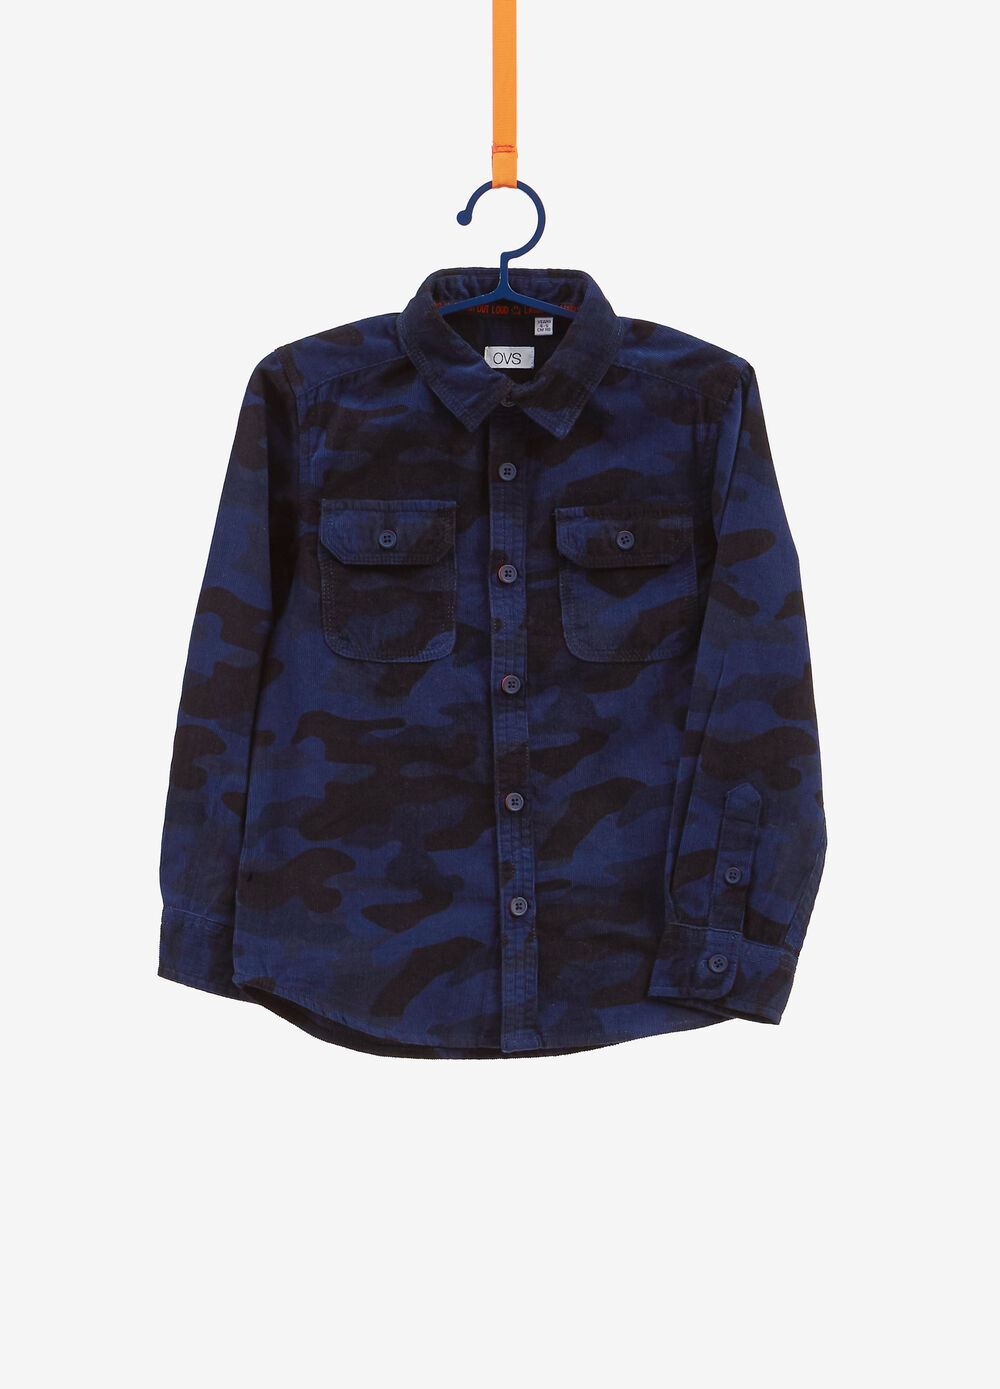 100% cotton shirt with camouflage pattern